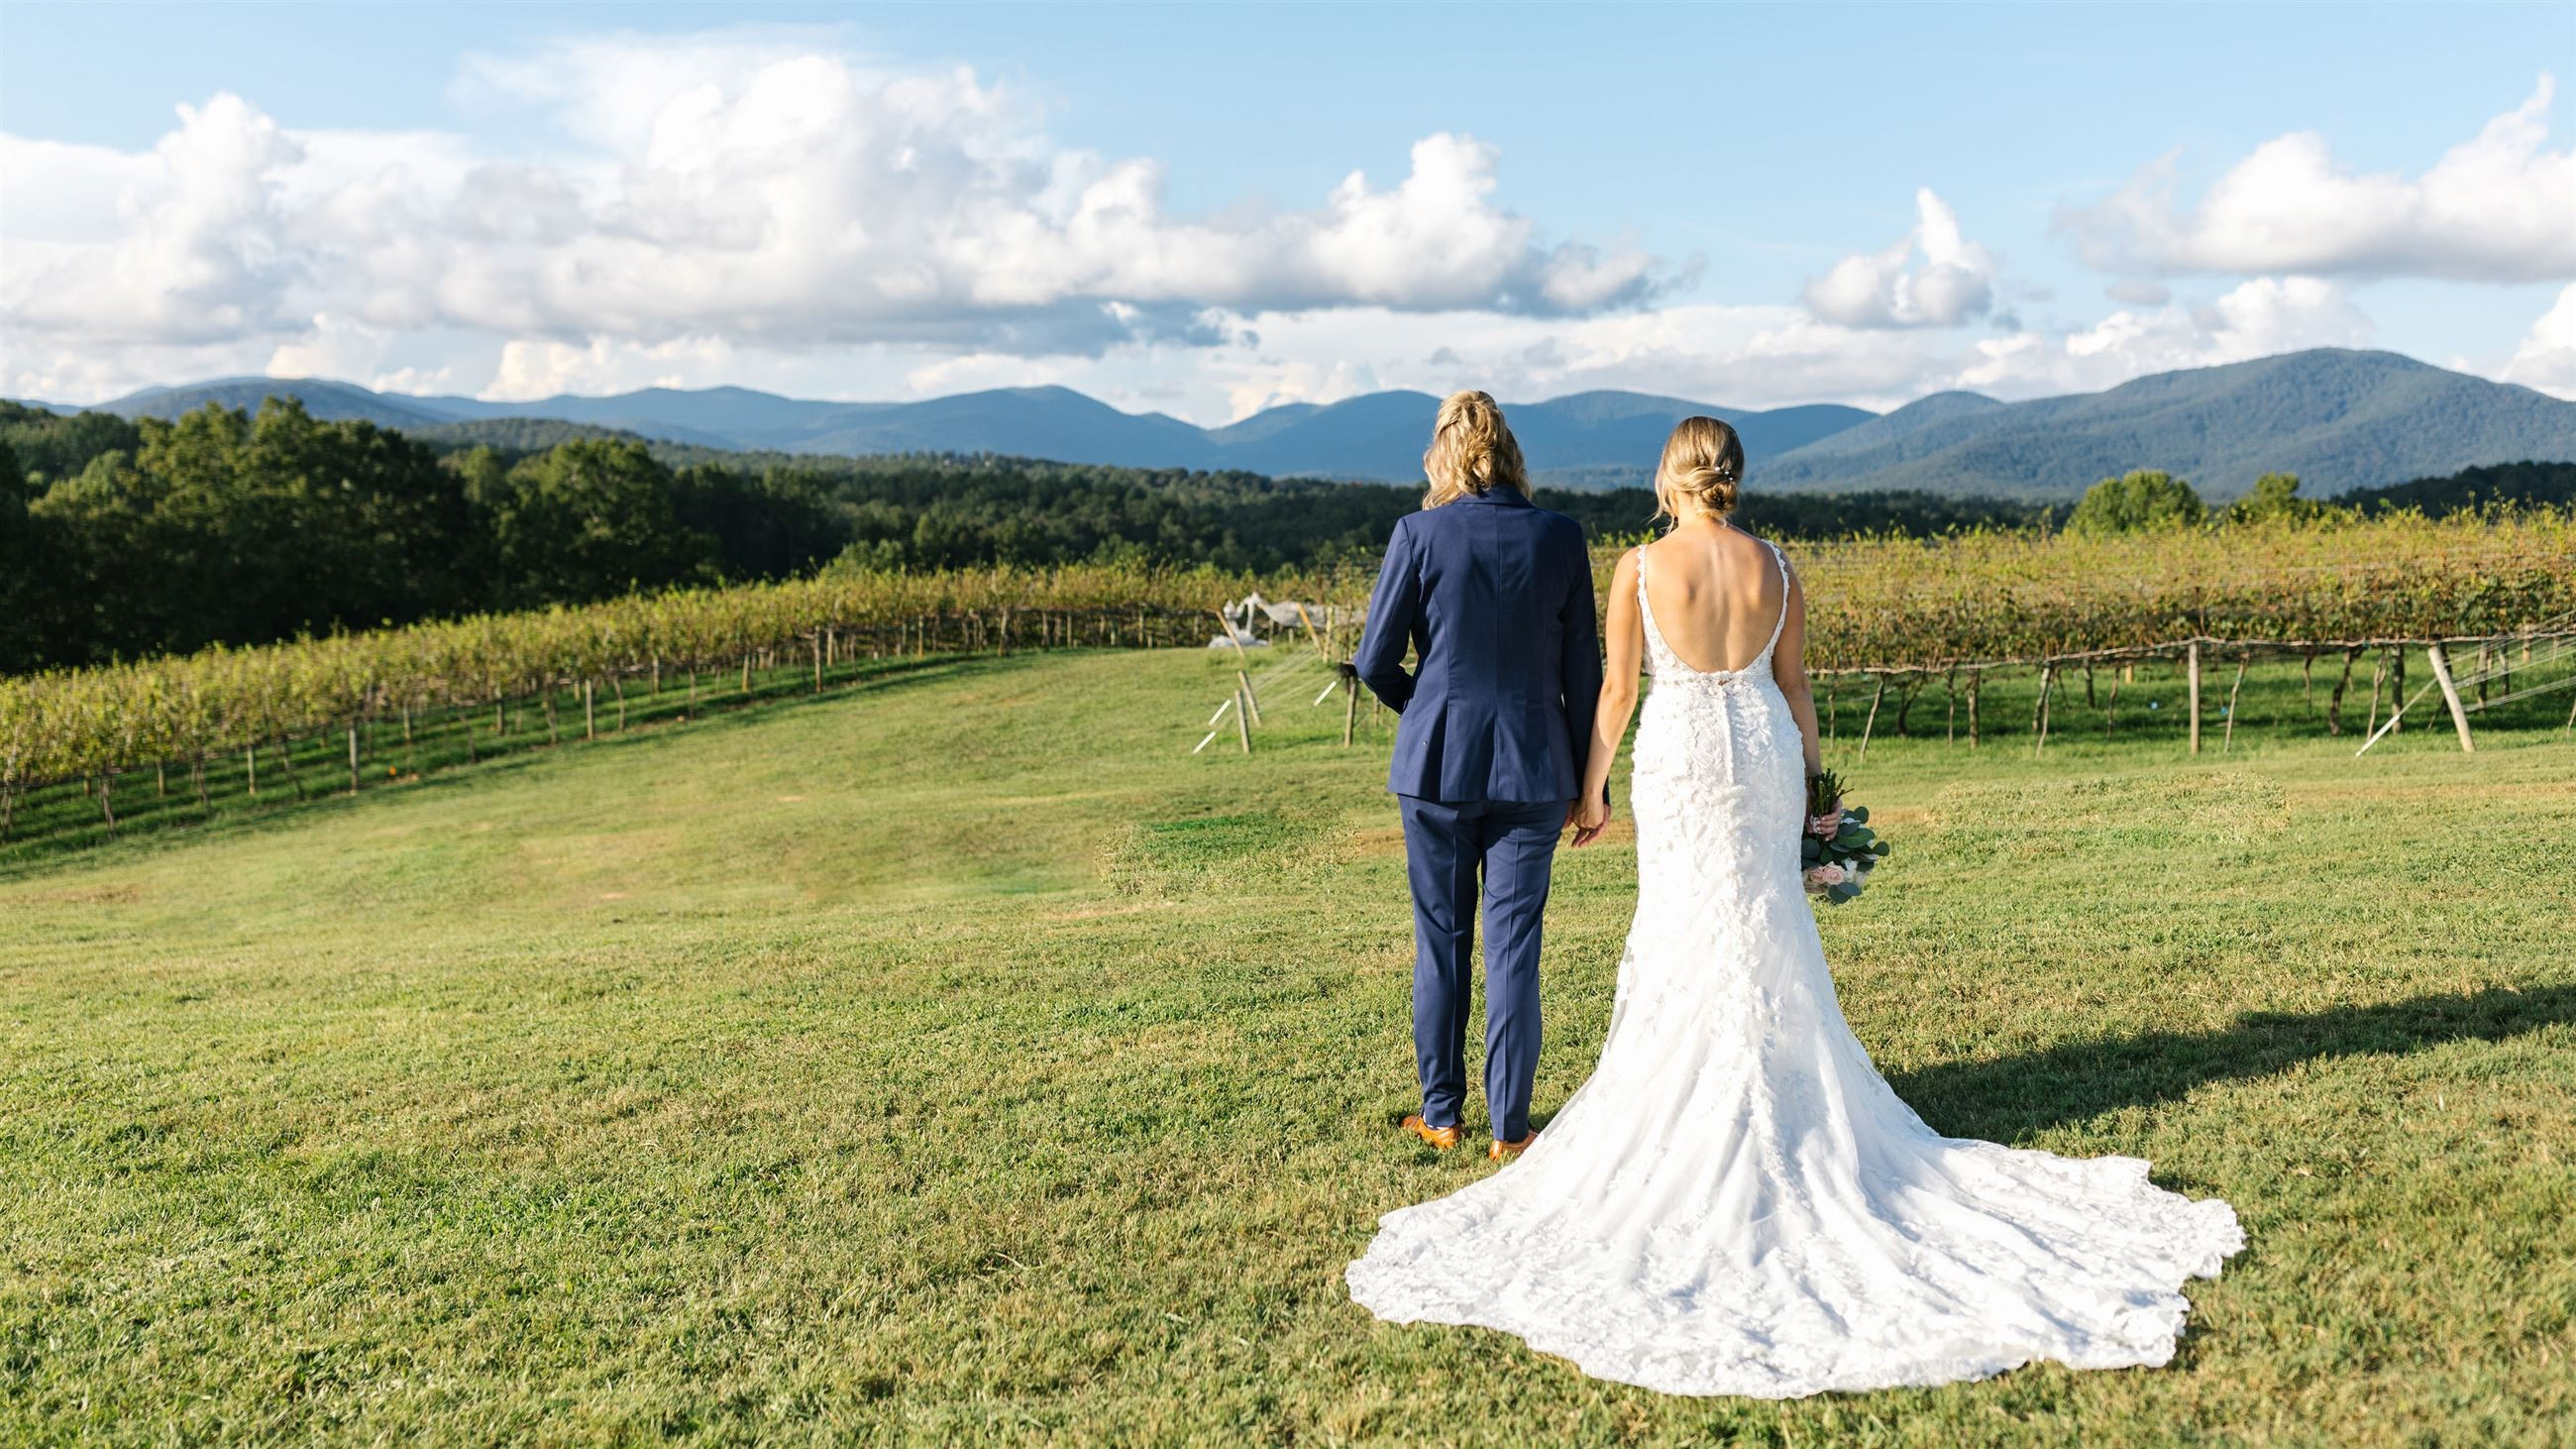 Meant to Be—A Romantic Vineyard Wedding During COVID-19